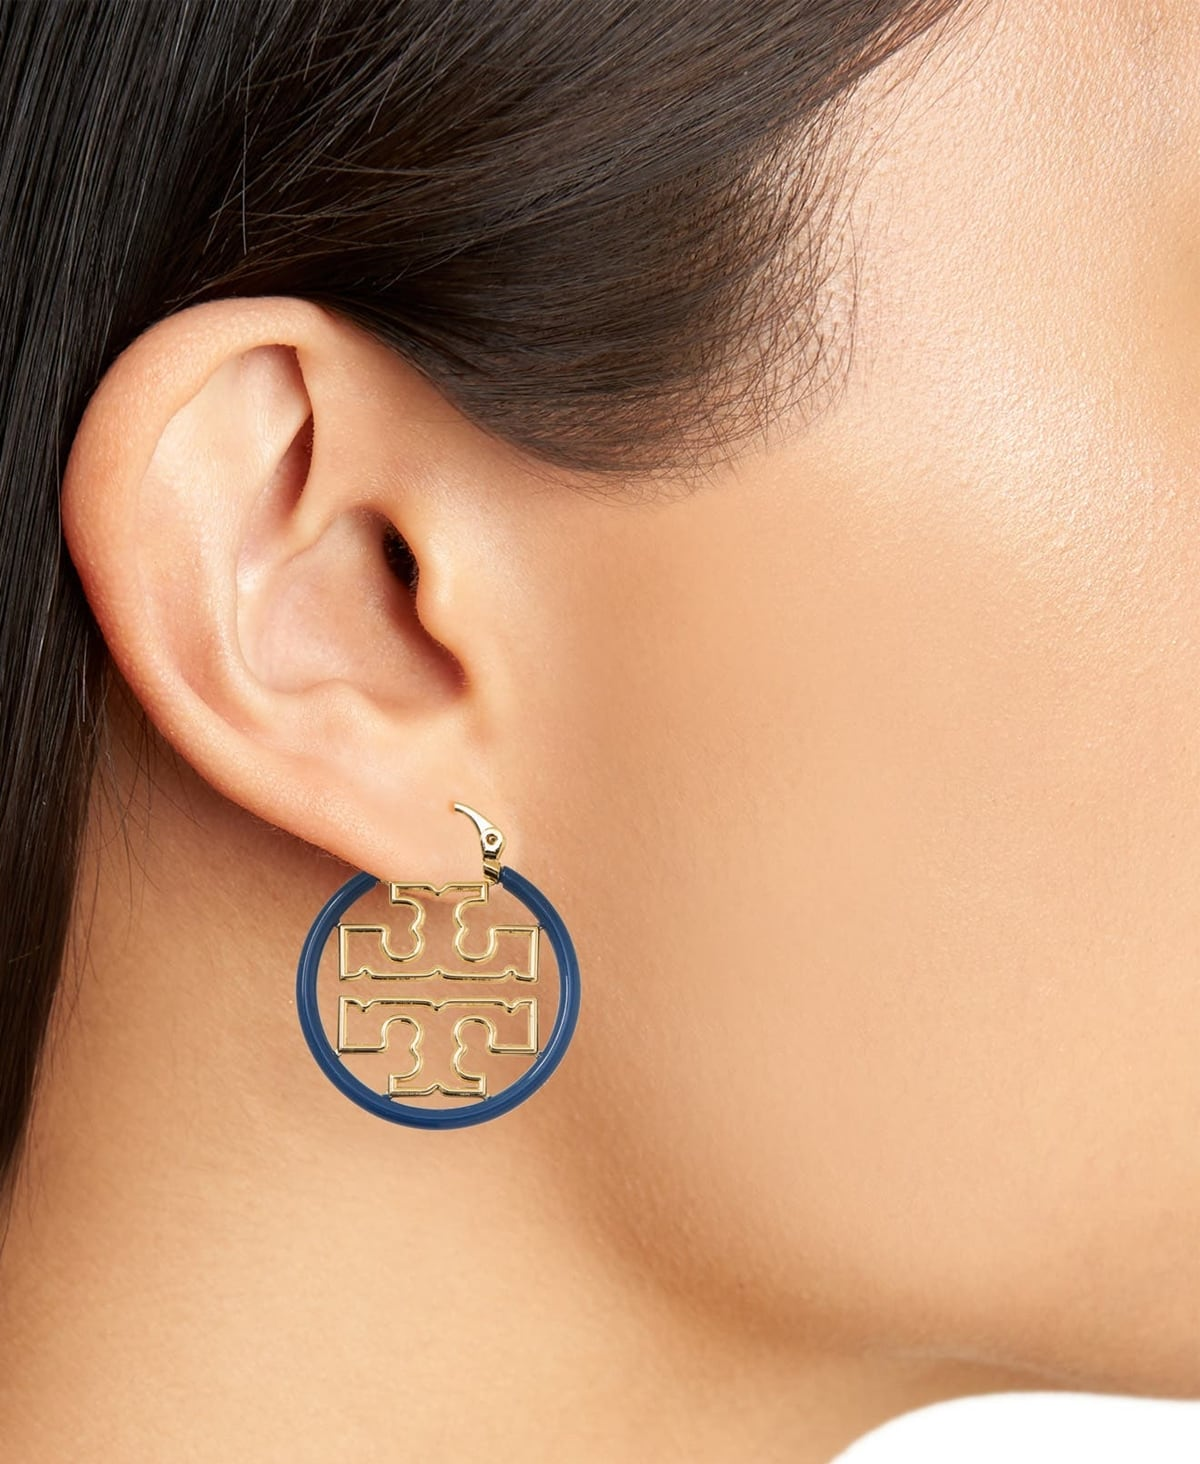 Smooth enamel surrounds glinting double-T logos in these small blue and gold hoop earrings from Tory Burch